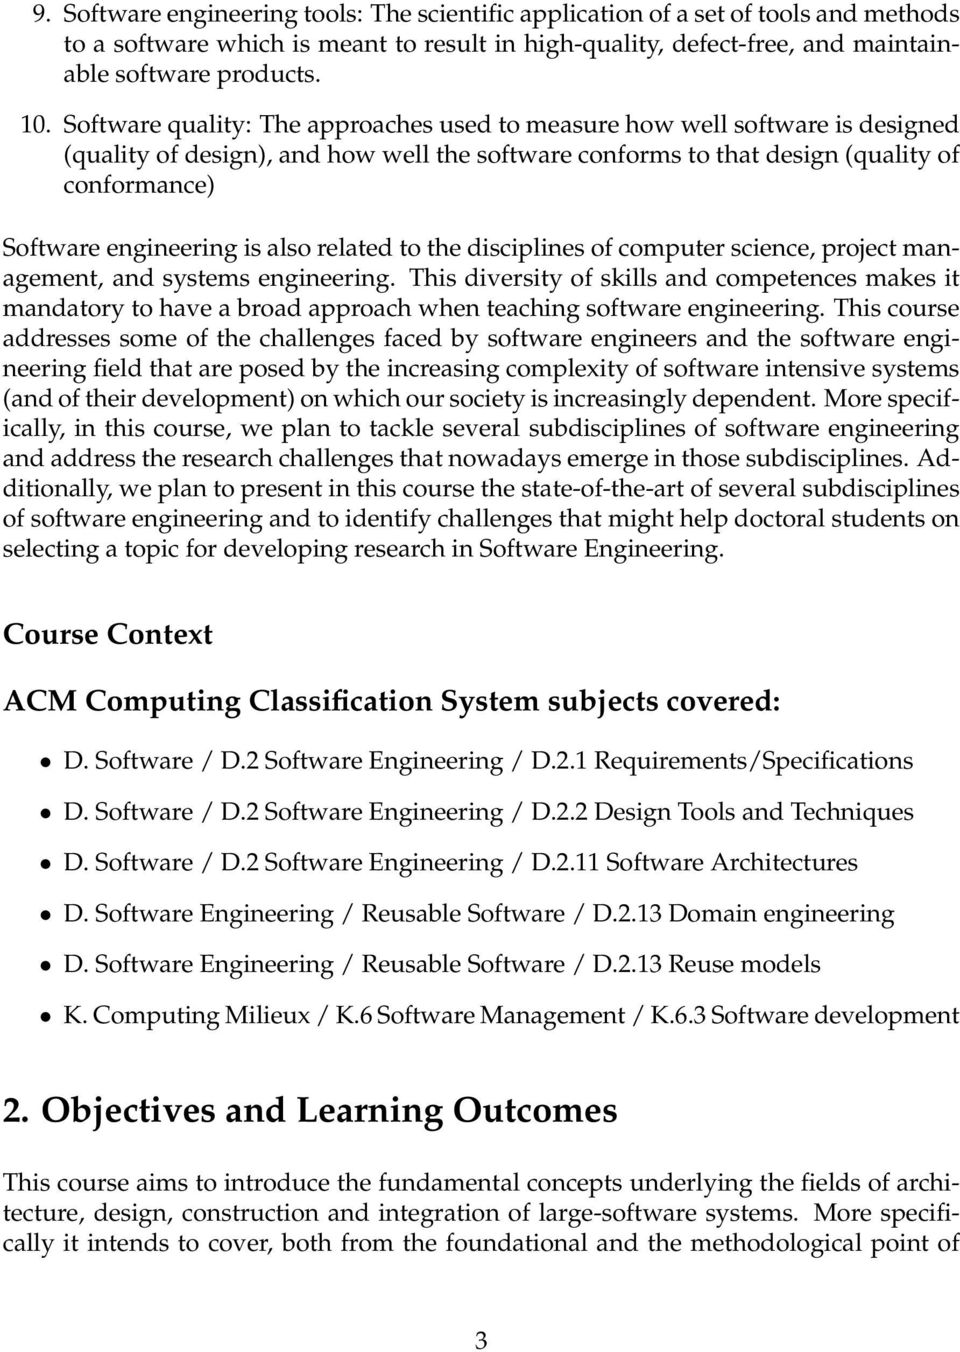 also related to the disciplines of computer science, project management, and systems engineering.